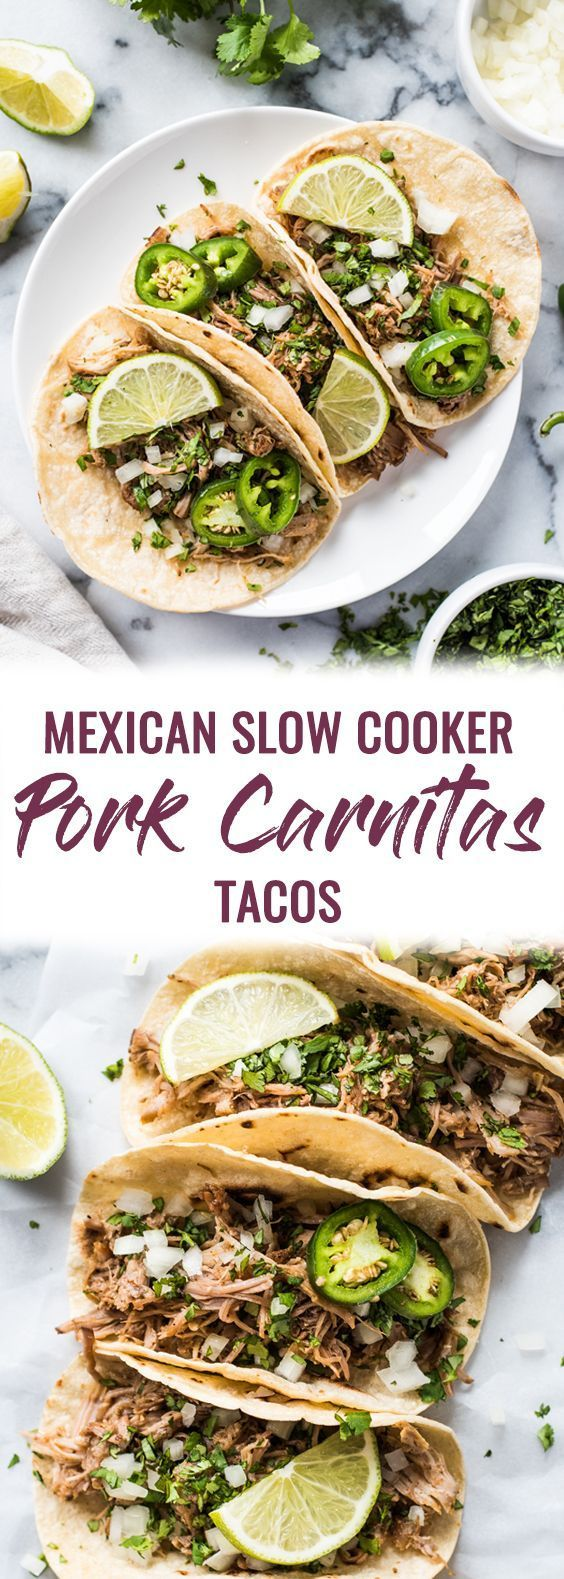 Mexican Slow Cooker Pork Carnitas Tacos ~ are seasoned with oregano, cumin, chili powder, lime juice and are the perfect dinner for any night of the week! (gluten free, dairy free, paleo, healthy, clean eating)